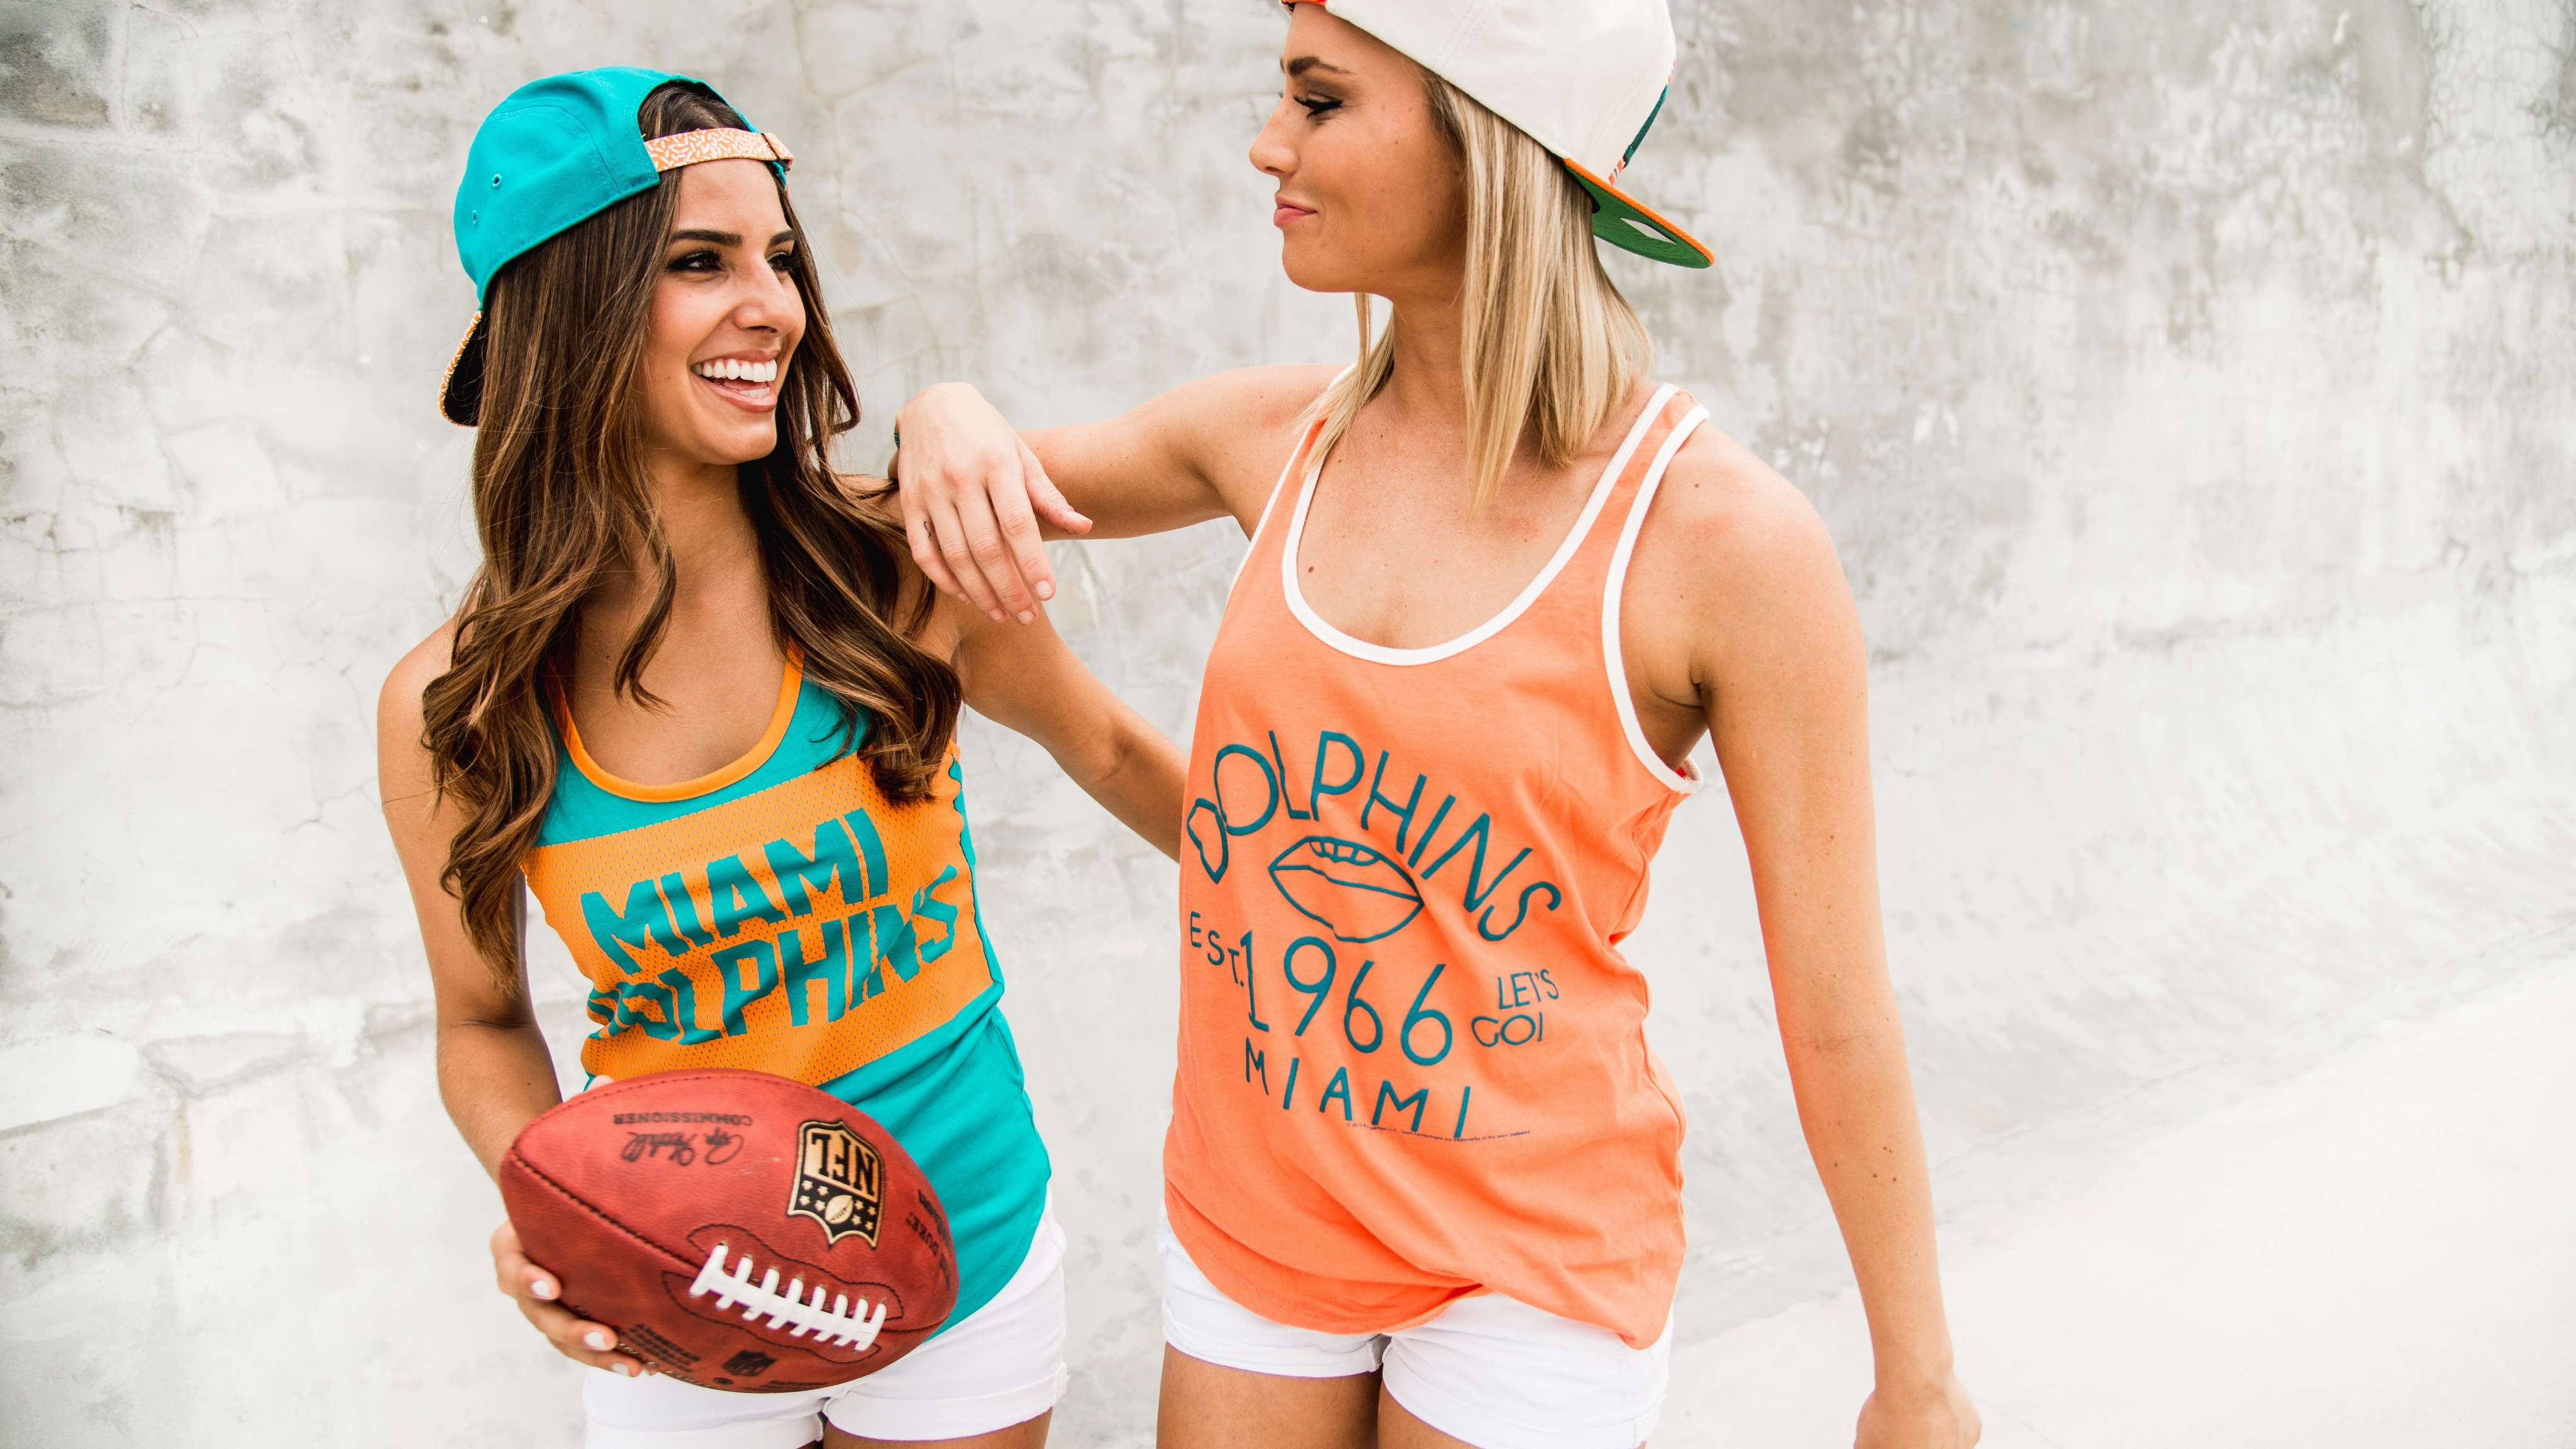 4096x2304 - Miami Dolphins Wallpapers 22